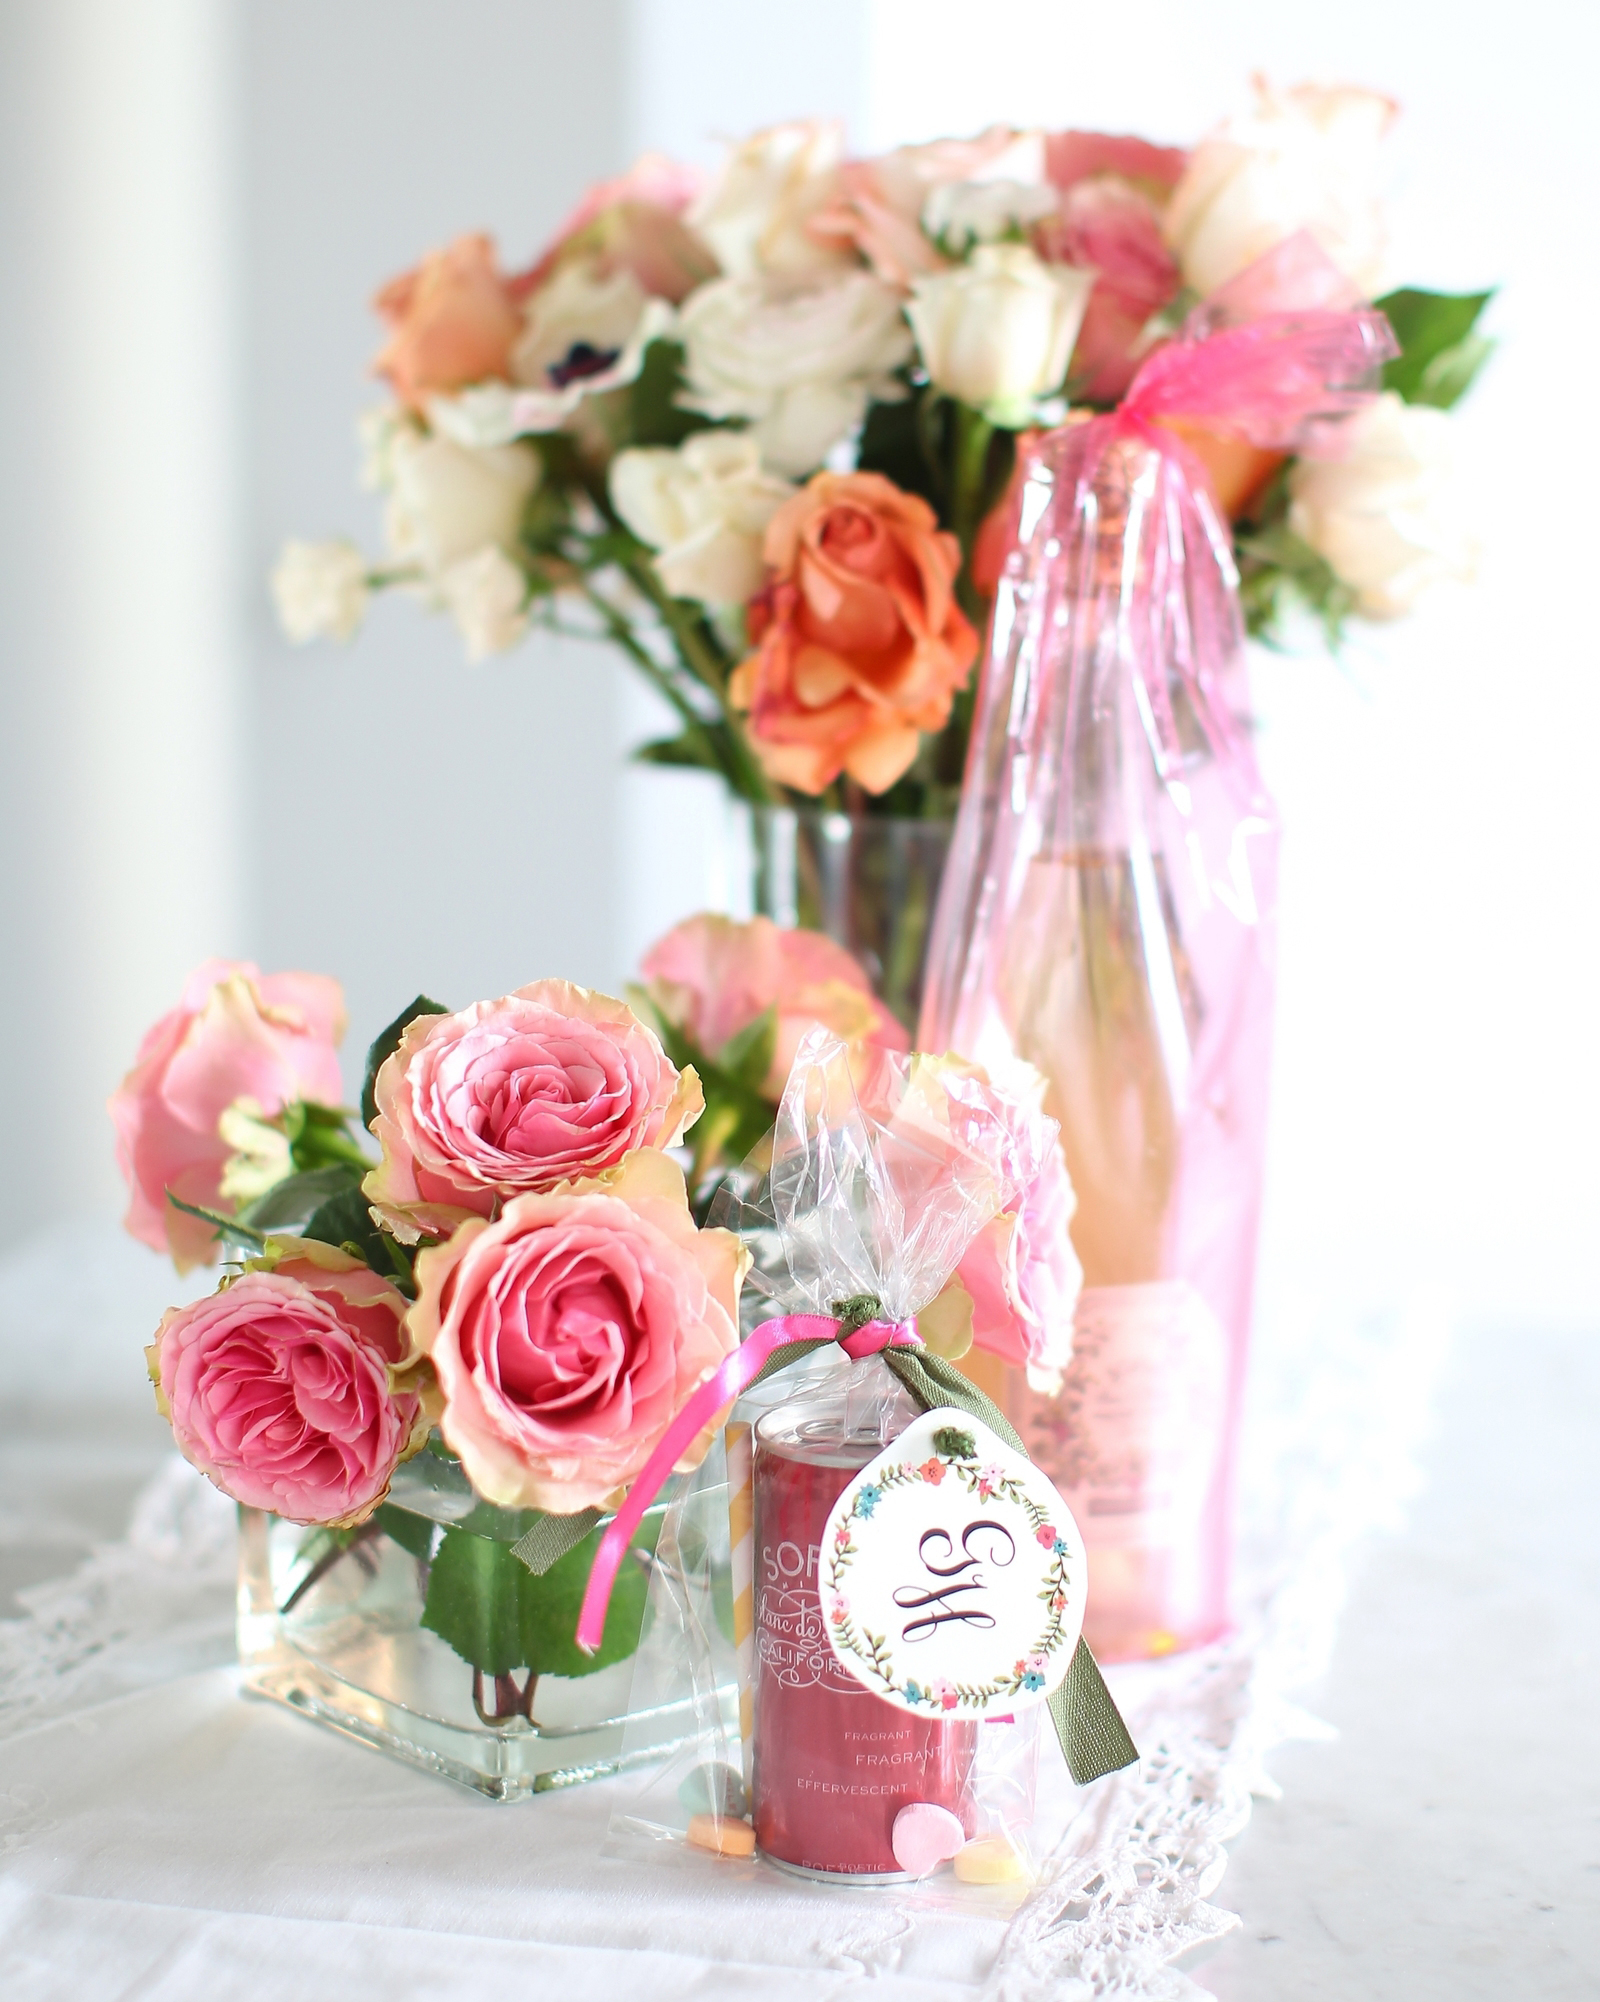 geri-hirsch-bridal-shower-tea-party-flowers-favors-0315.jpg